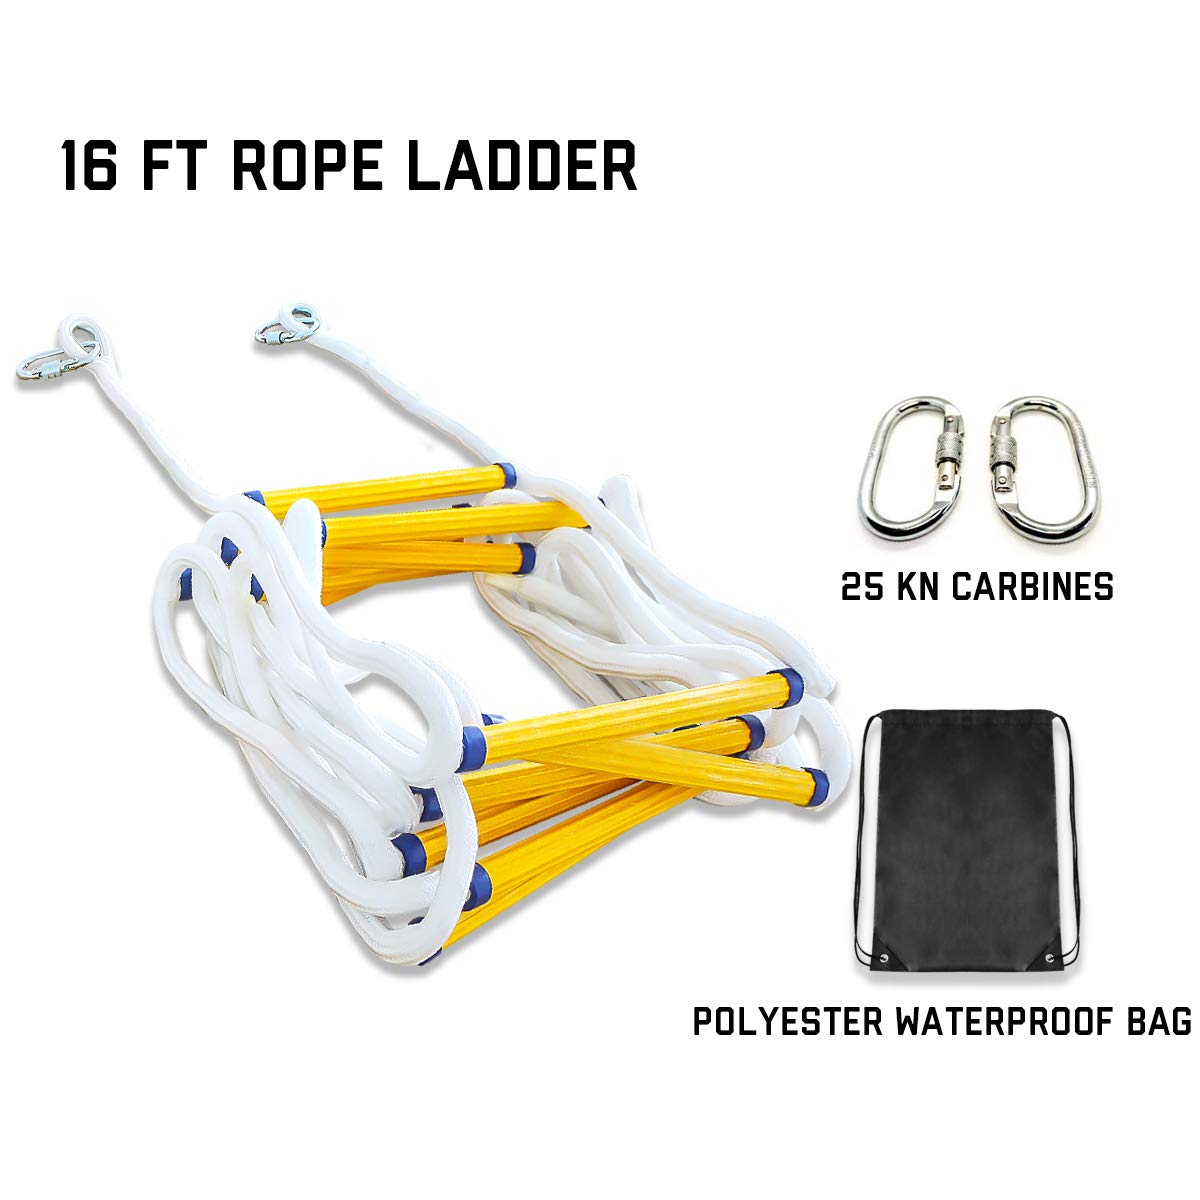 Emergency Fire Escape Rope Ladder 2 Story Homes 16 Feet Flame Resistant Fire Safety Ladders with Carabines | Weight Capacity up to 2500 Pounds | Portable and Reusable